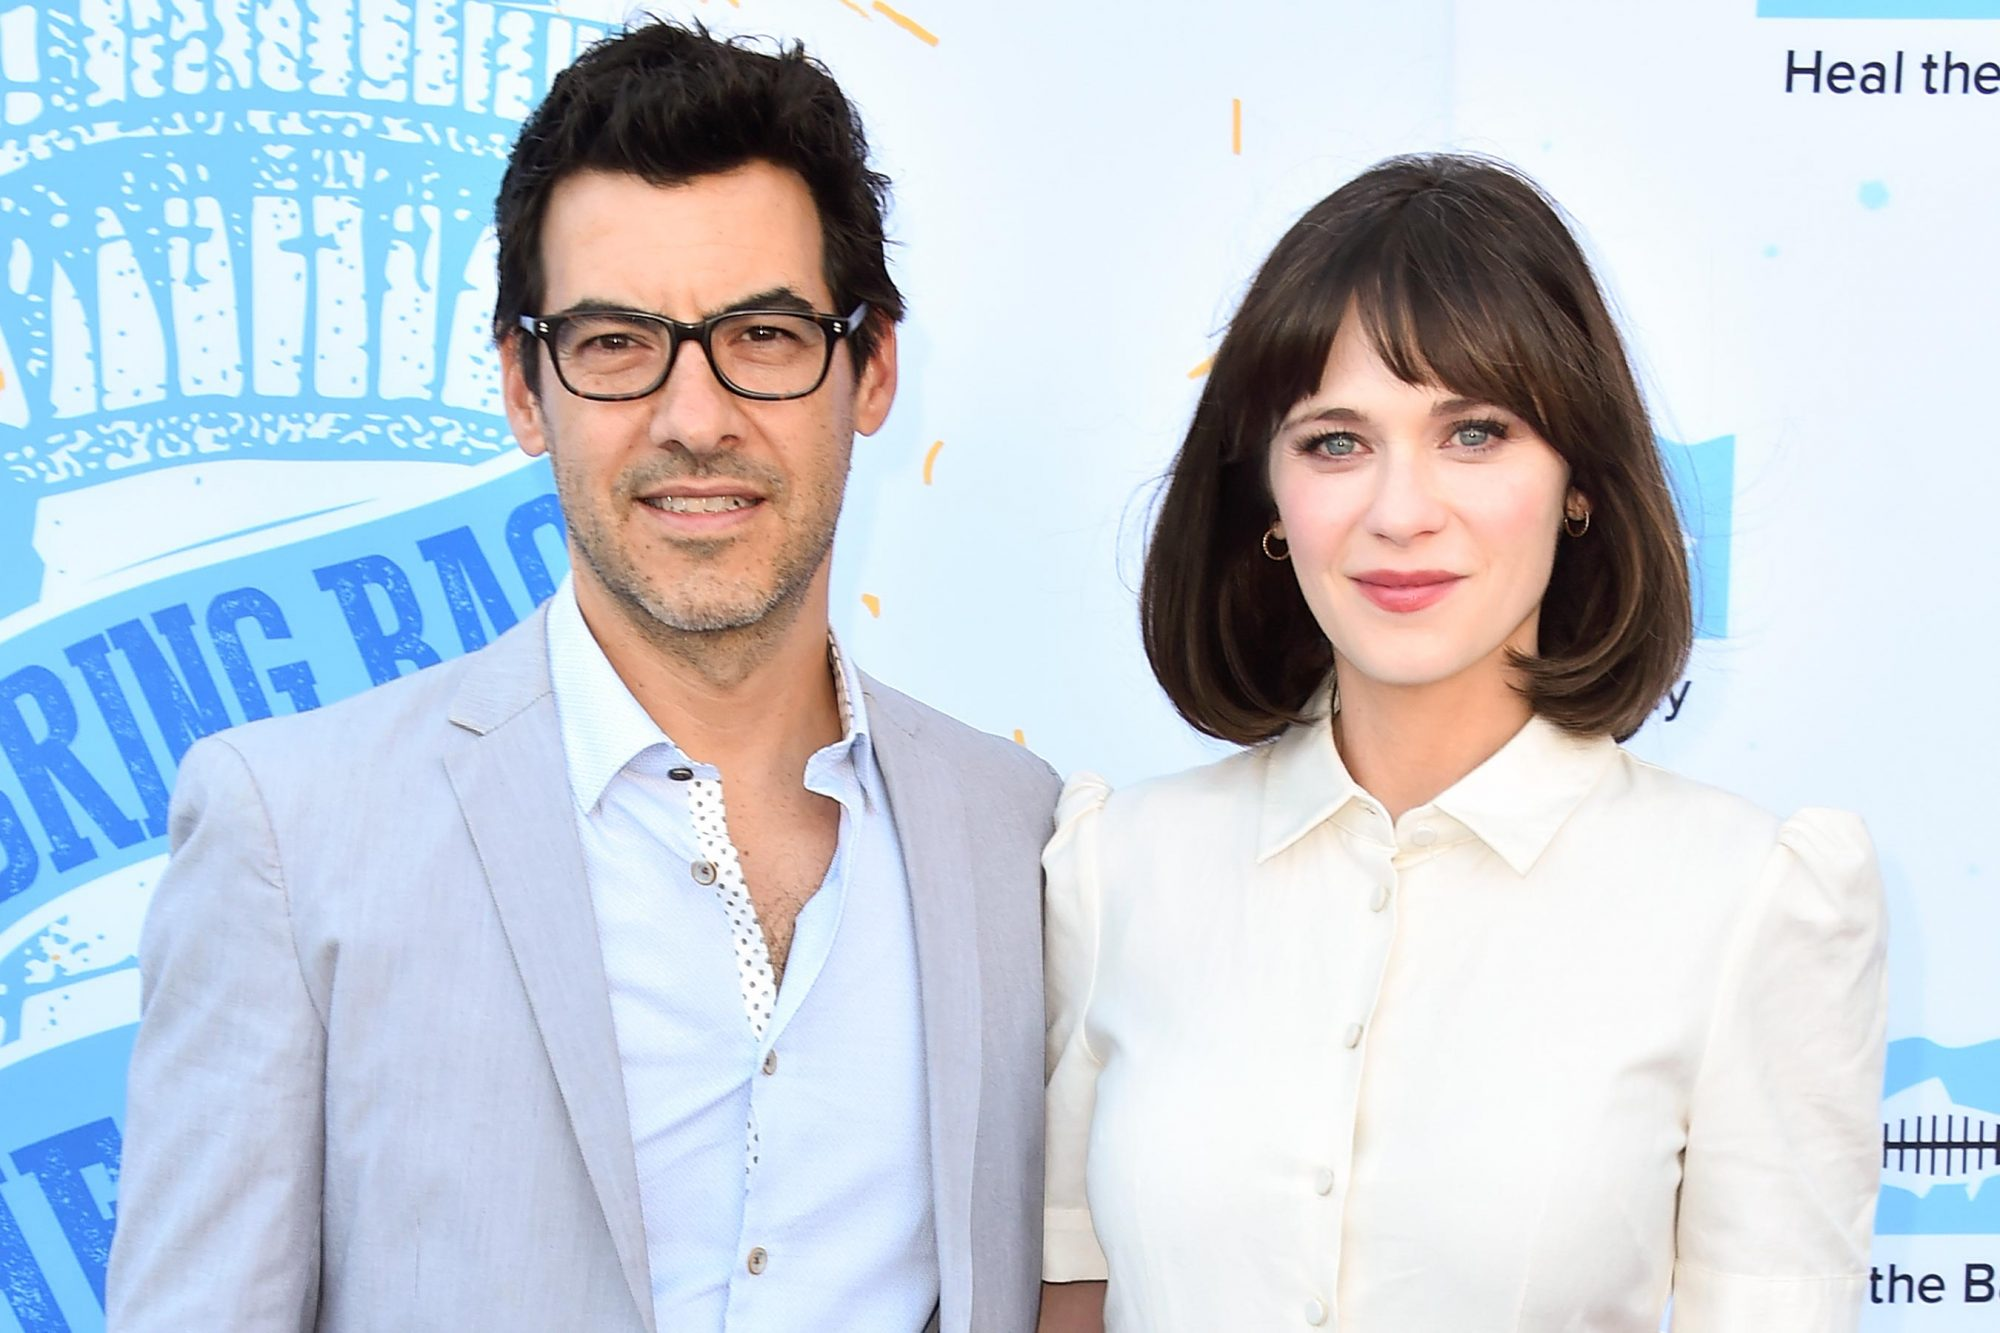 SANTA MONICA, CA - MAY 17: Producer Jacob Pechenik and actress Zooey Deschanel attend the 2018 Heal The Bay's Bring Back The Beach Awards Gala at The Jonathan Club on May 17, 2018 in Santa Monica, California. (Photo by Alberto E. Rodriguez/Getty Images)